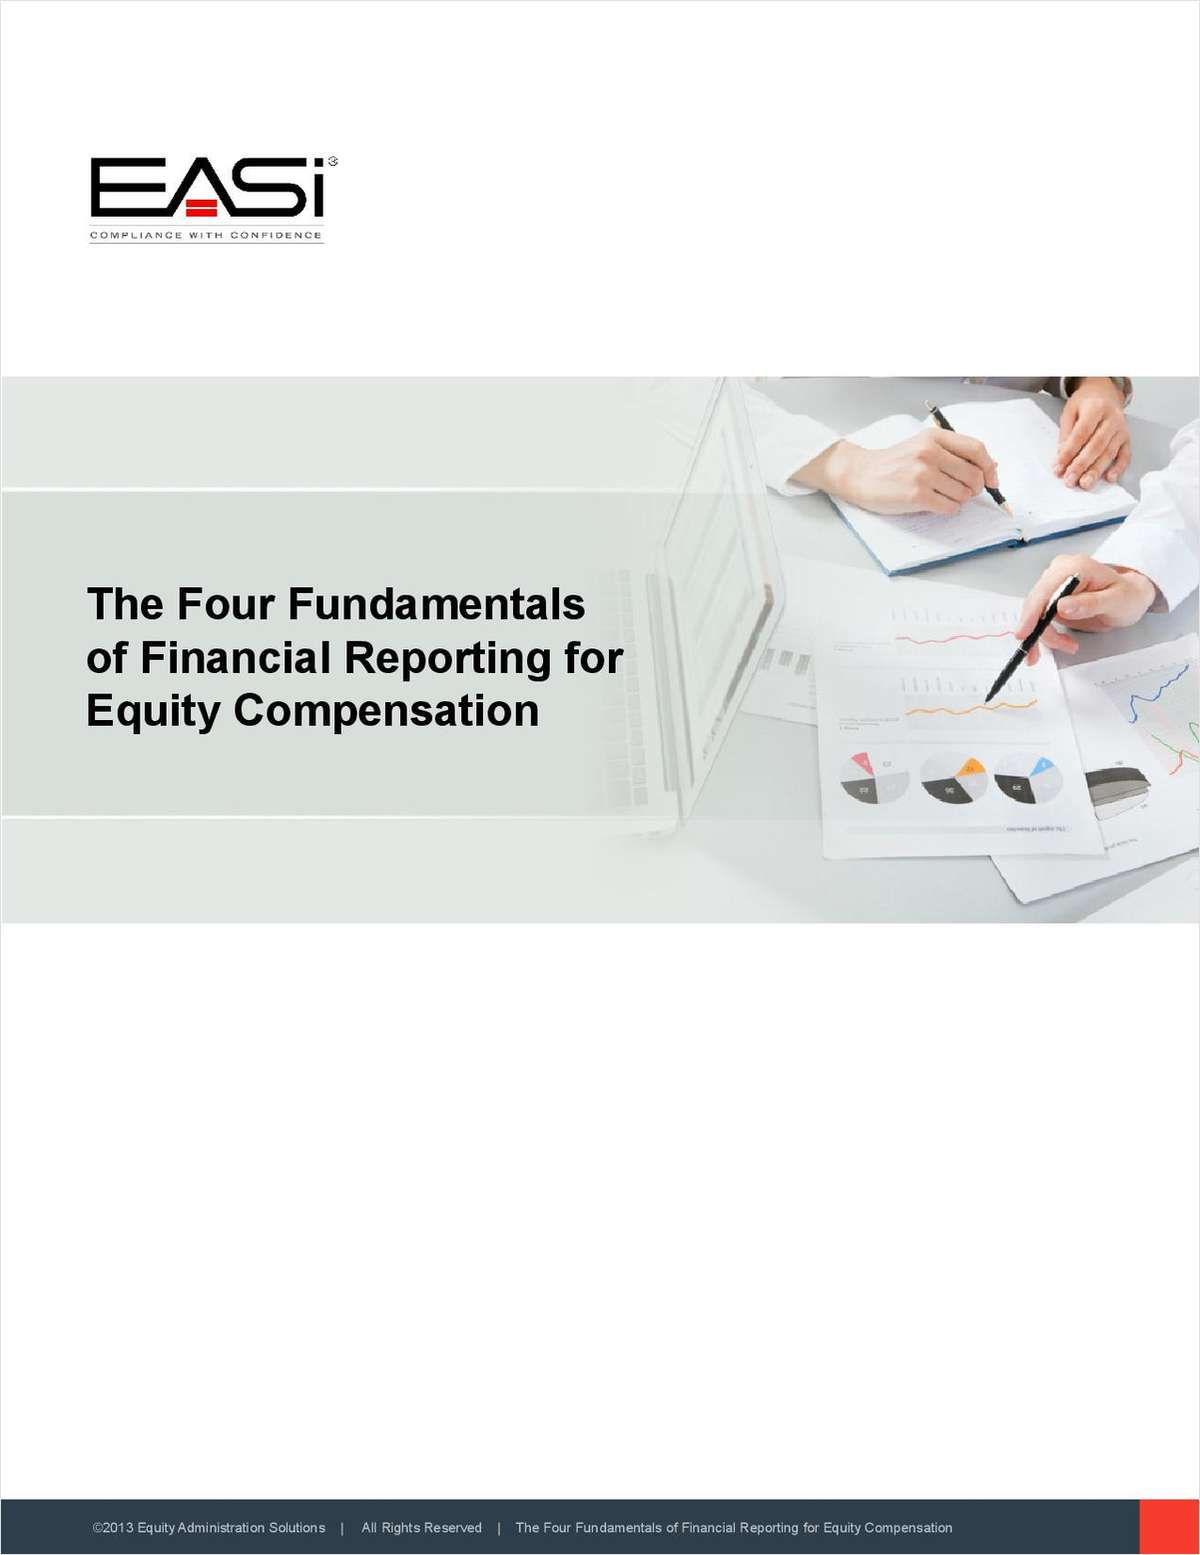 The Four Essentials of Financial Reporting for Equity Compensation